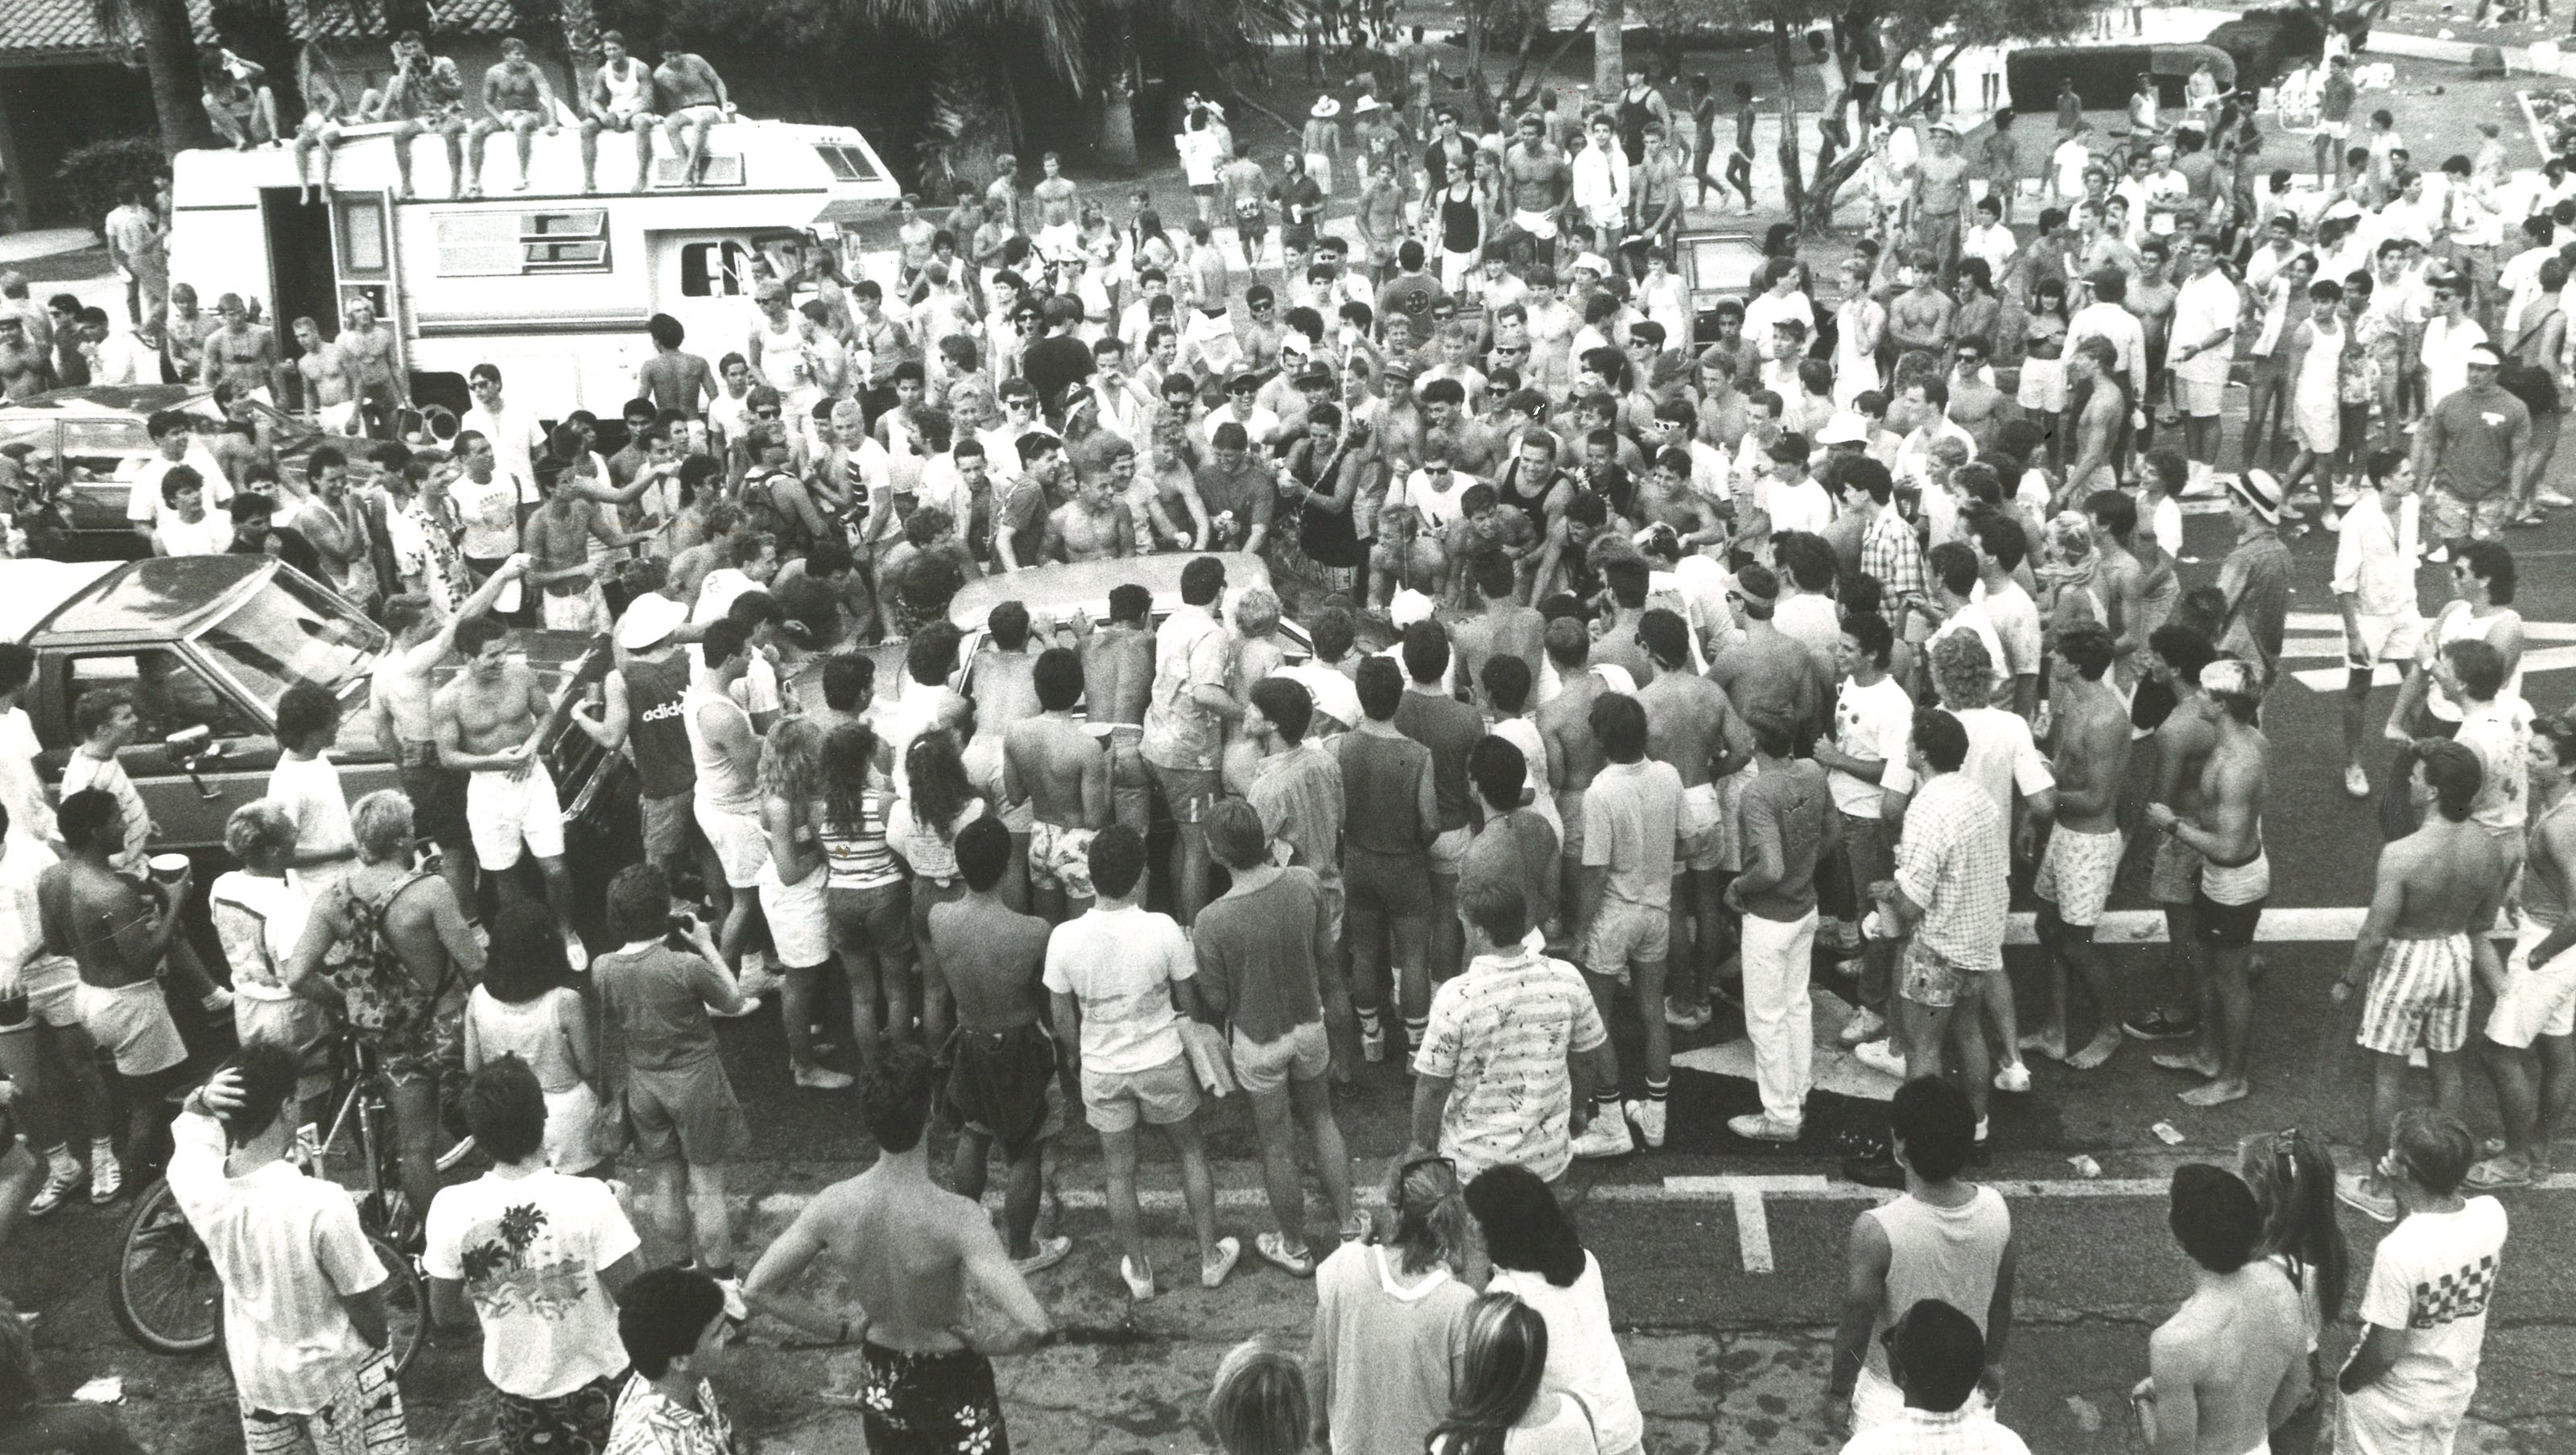 In 1986, a spring break riot changed Palm Springs. Here is the video.